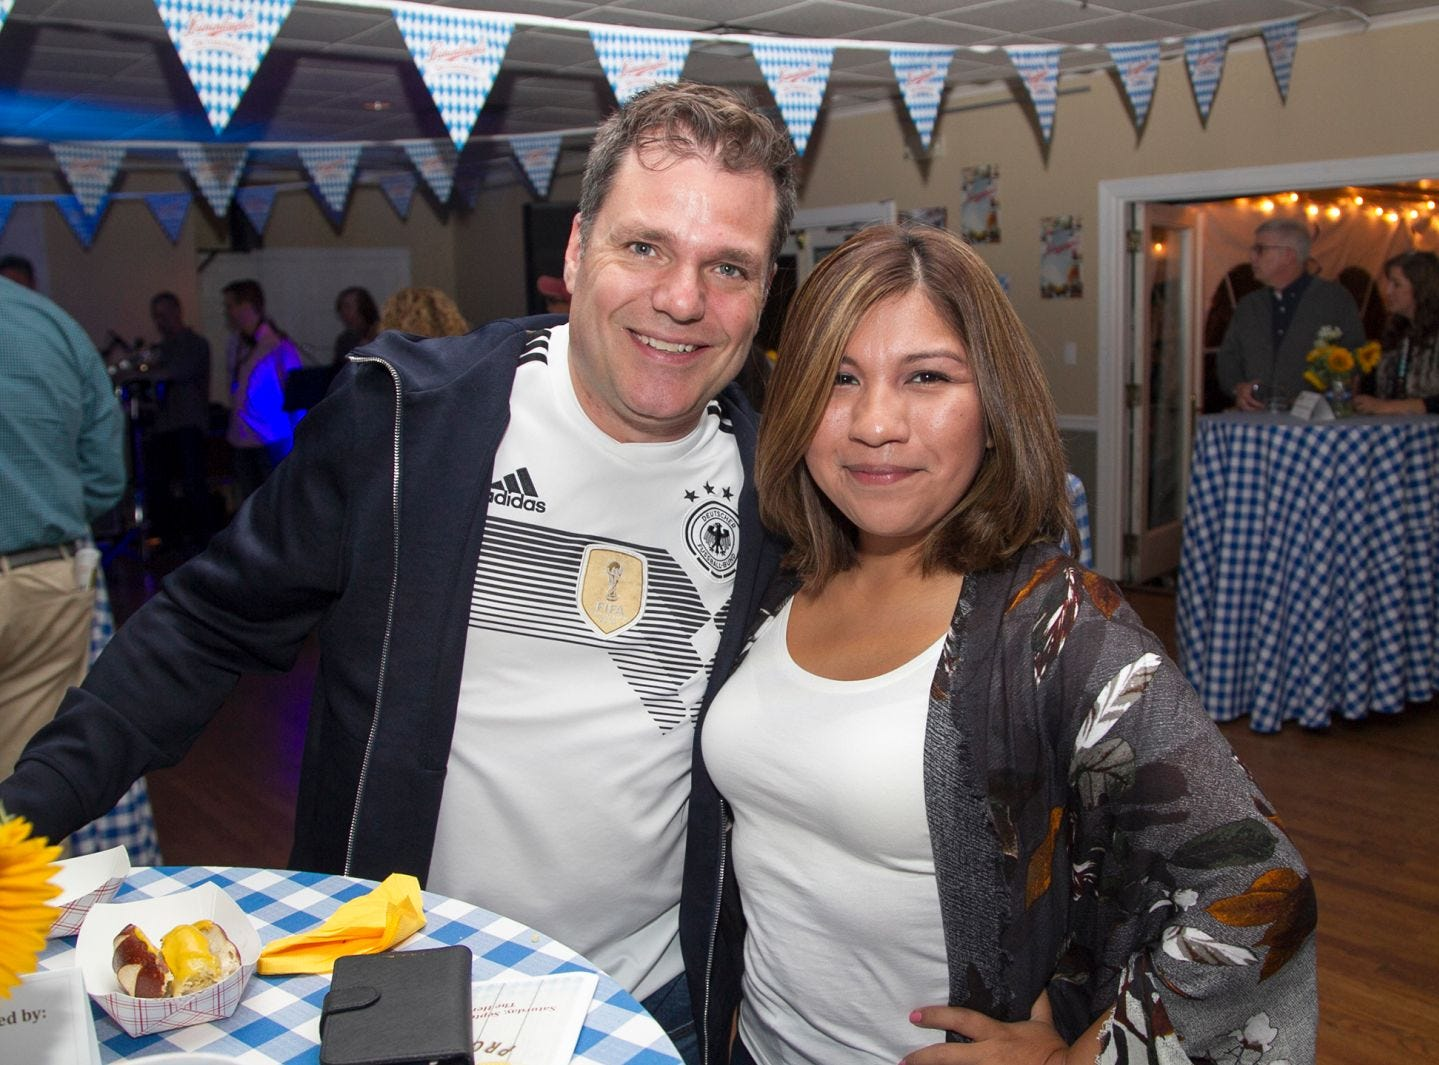 Tj and Nohely Ritter. Ridgewood Education Foundation's 2018 Oktoberfest at the Hermitage. 09/29/2018